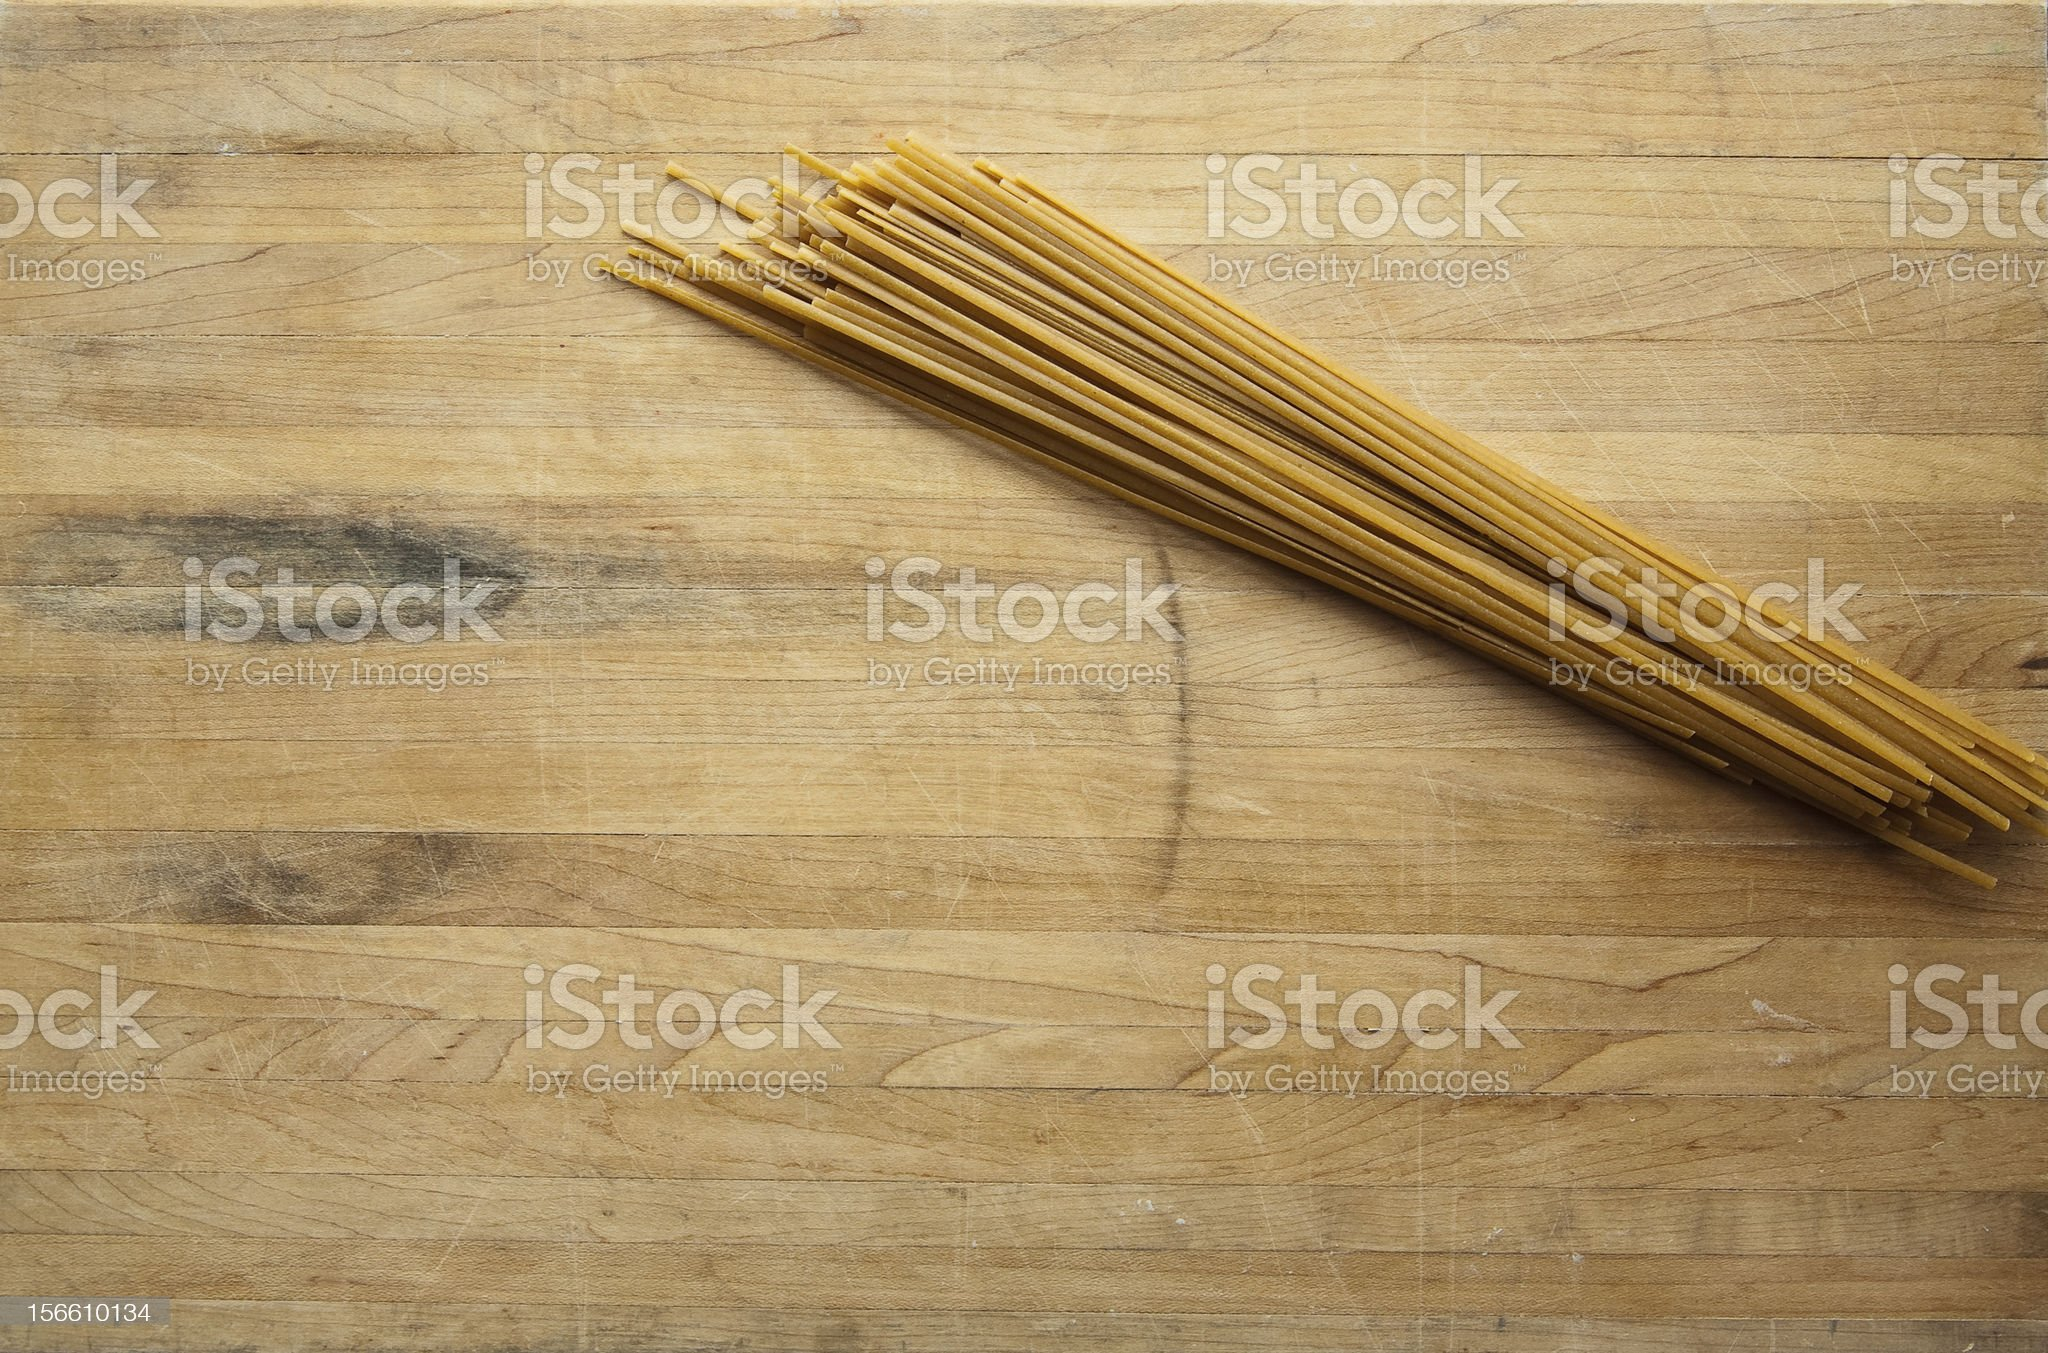 Linguine on a Worn Butcher Block Cutting Board royalty-free stock photo